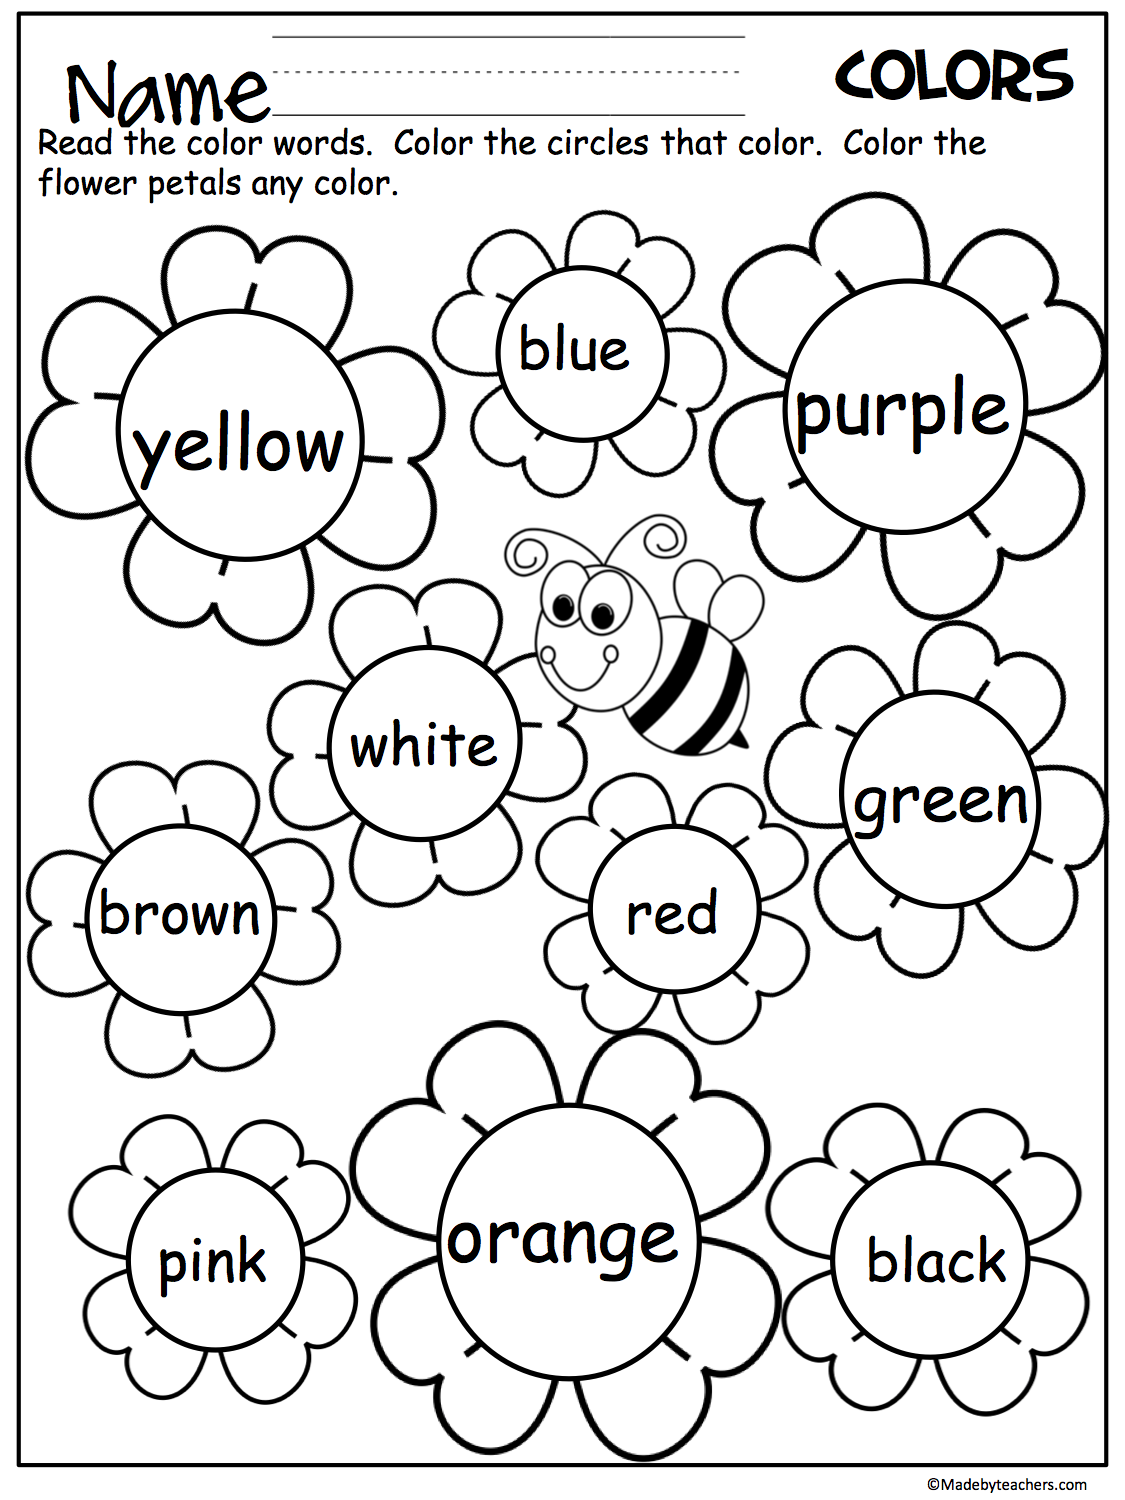 flower color words worksheet madebyteachers. Black Bedroom Furniture Sets. Home Design Ideas